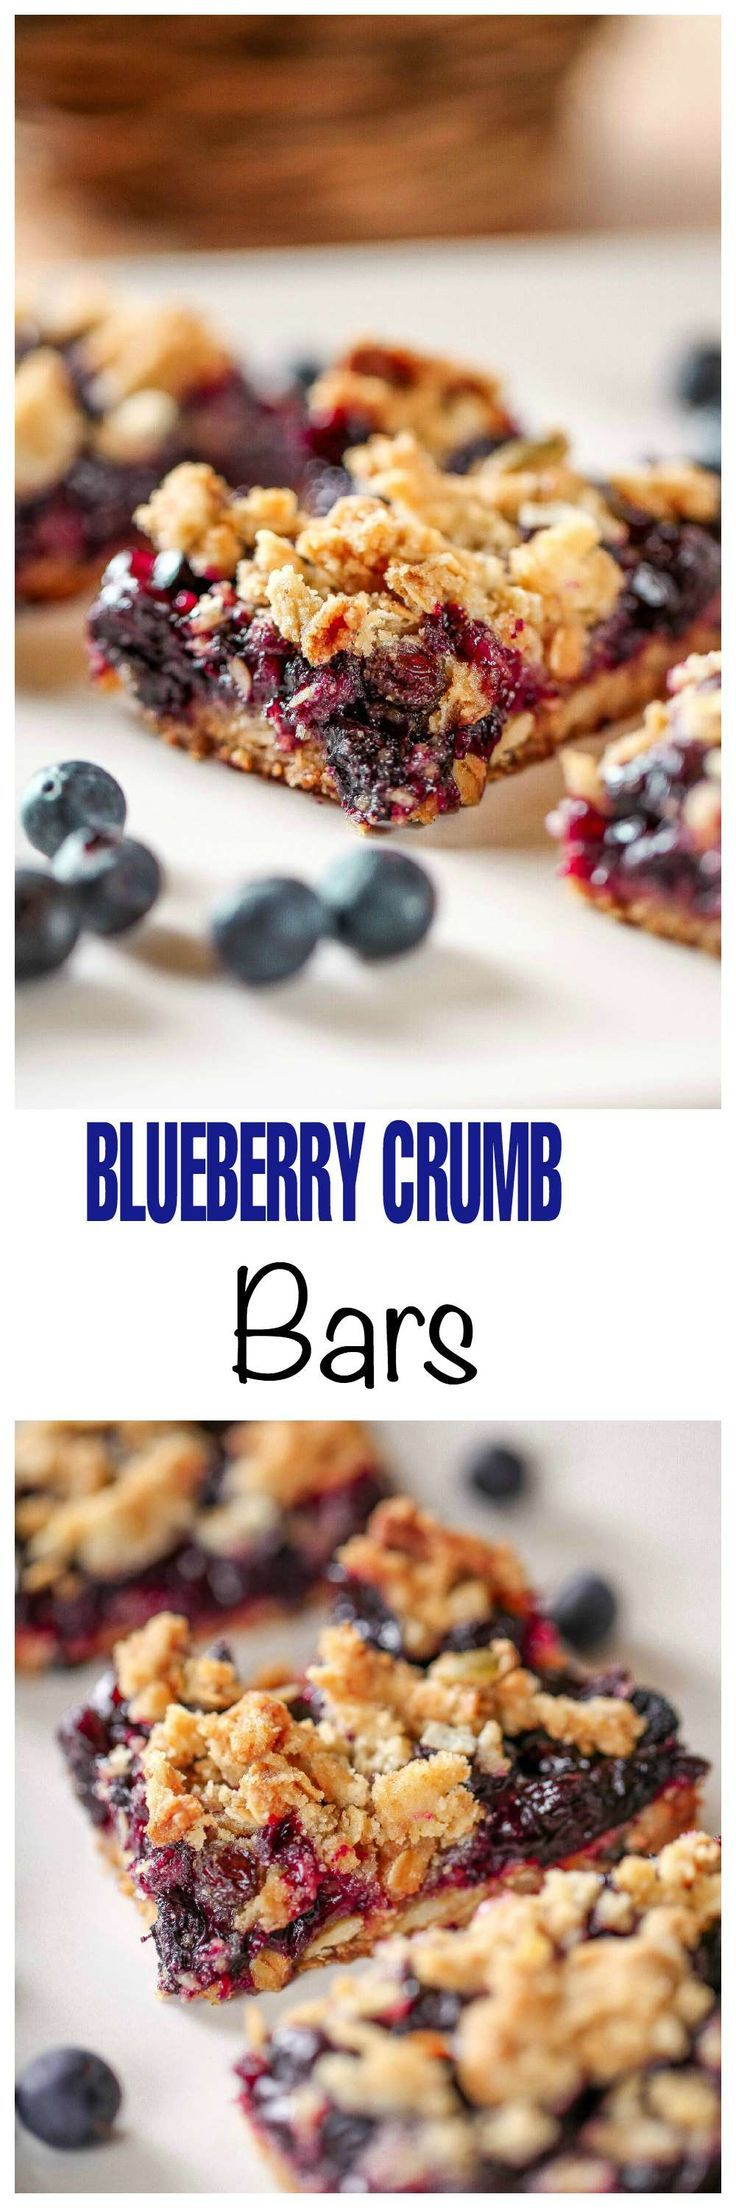 Blueberry Crumb Bars: These bars are full of juicy blueberries and are topped with a super crunchy crumb topping of toasted oats, dried blueberries, and sunflower seeds.